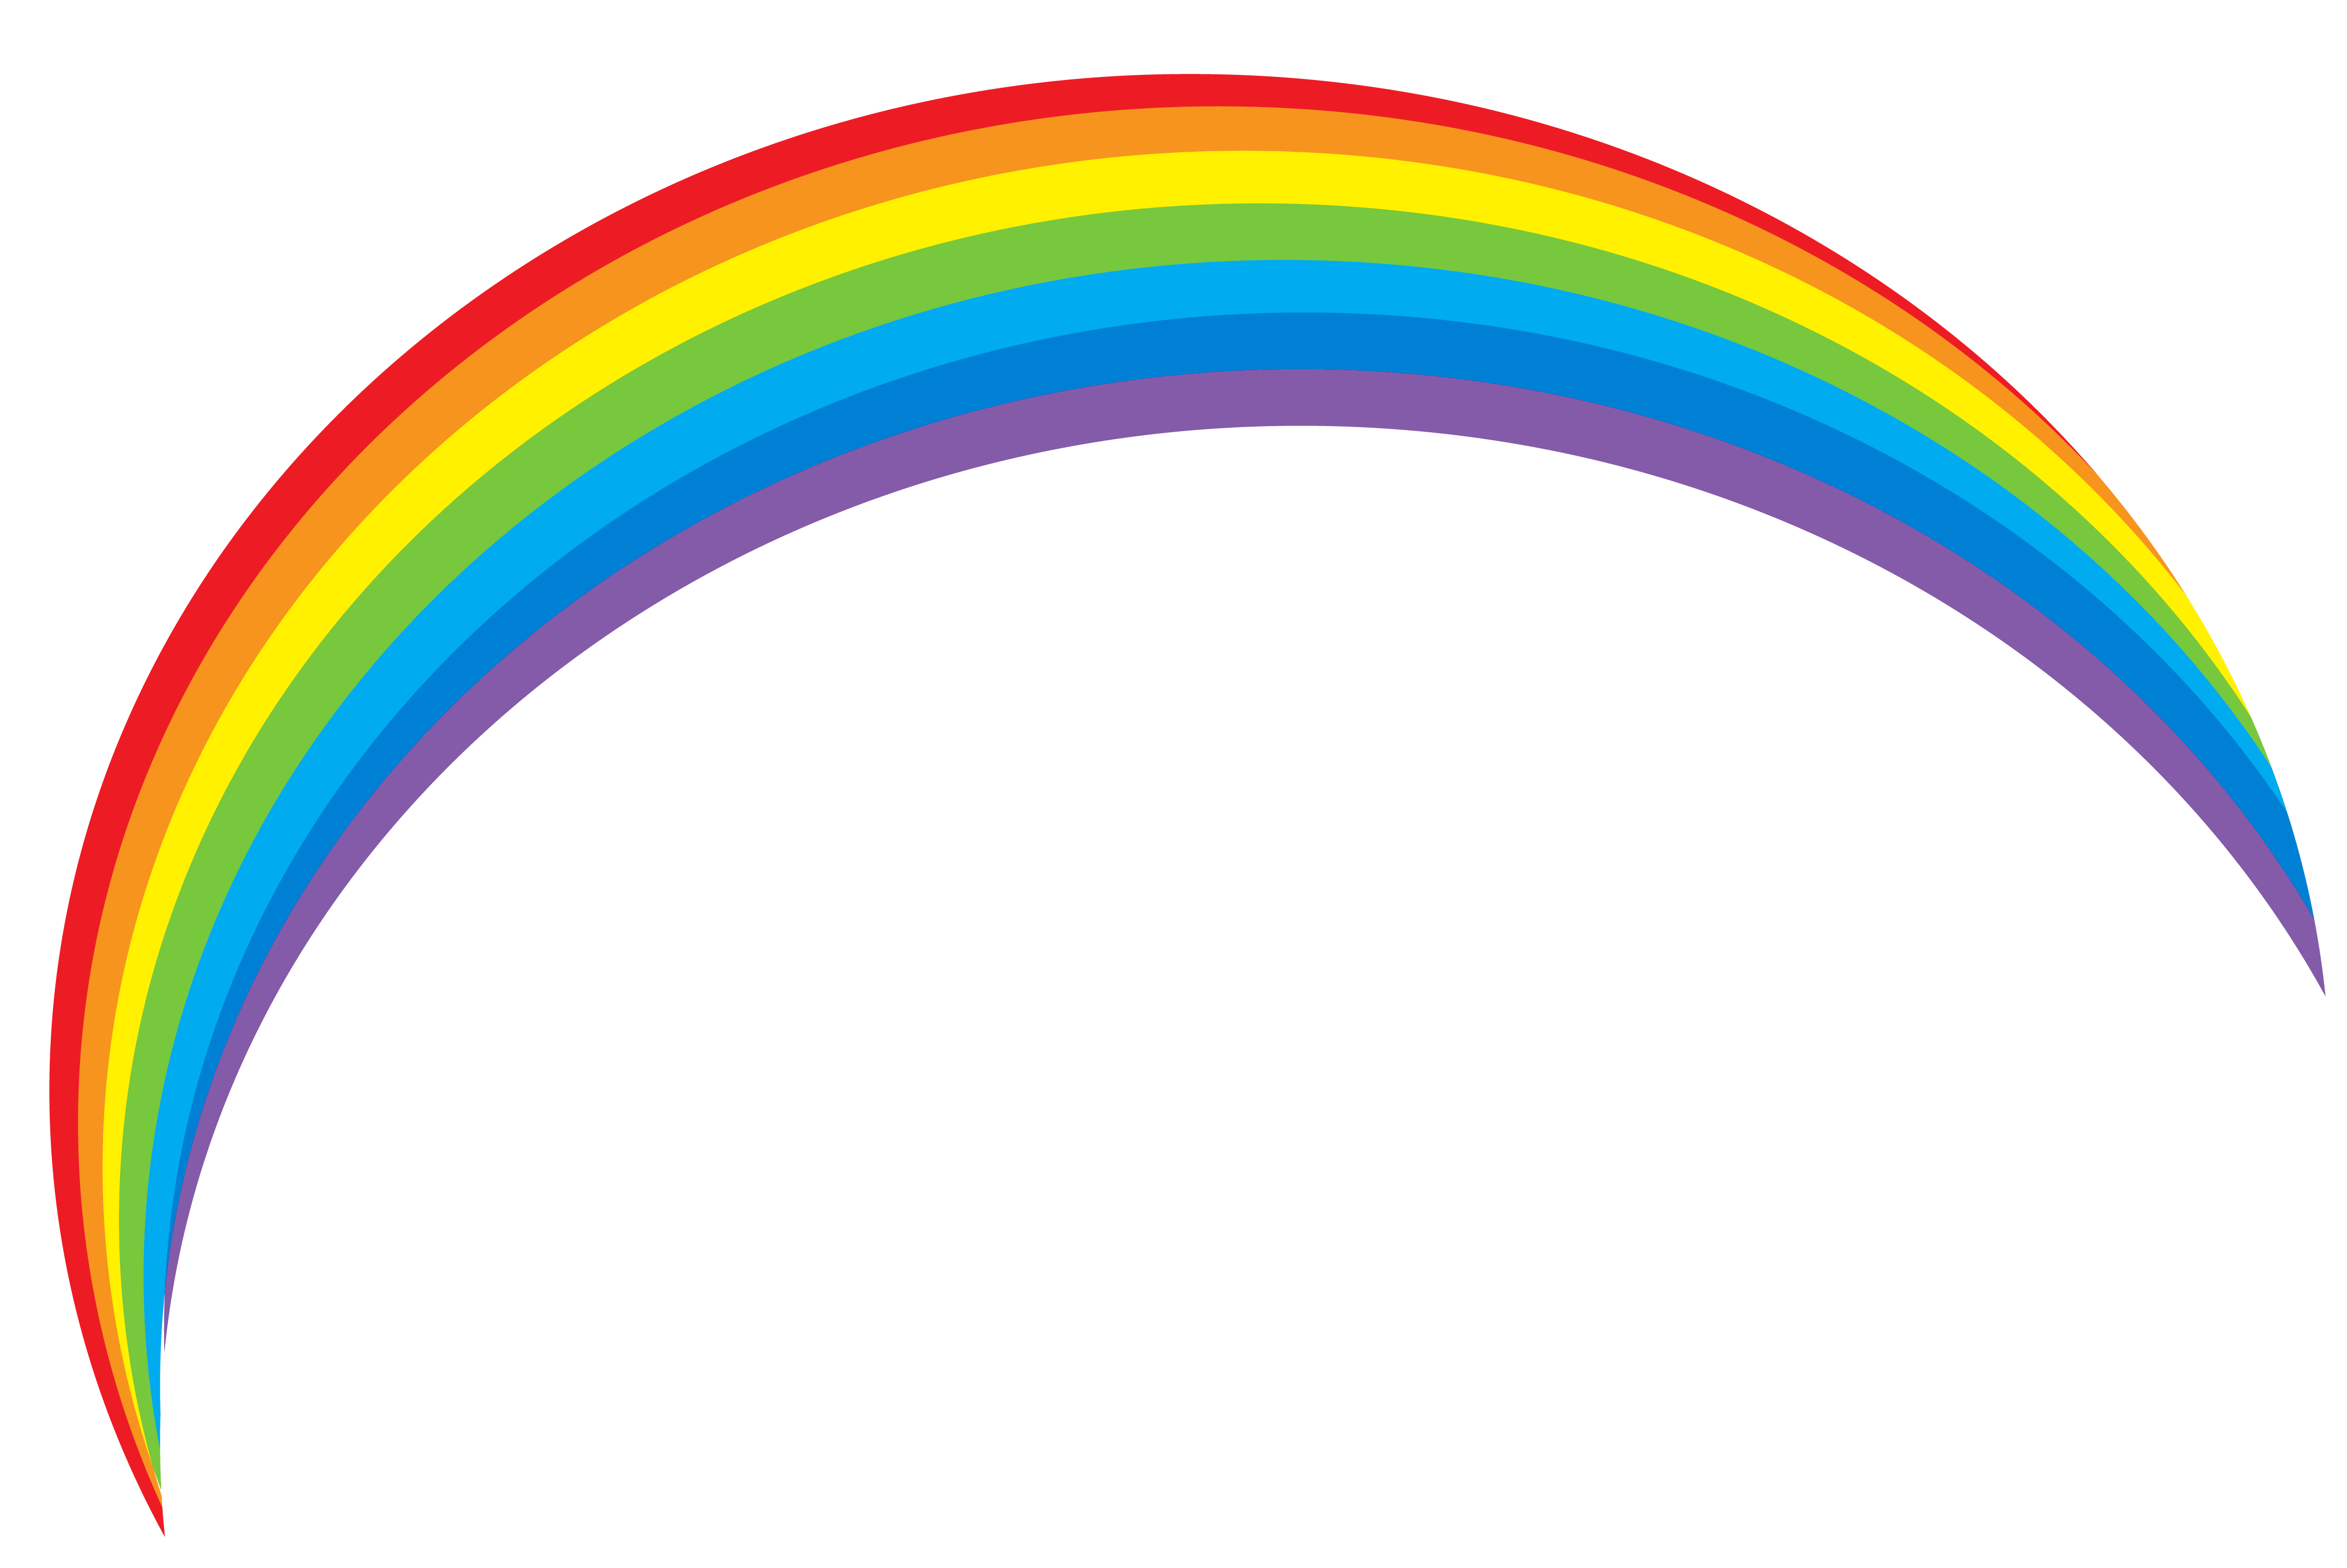 Transparent Rainbow Clipart.